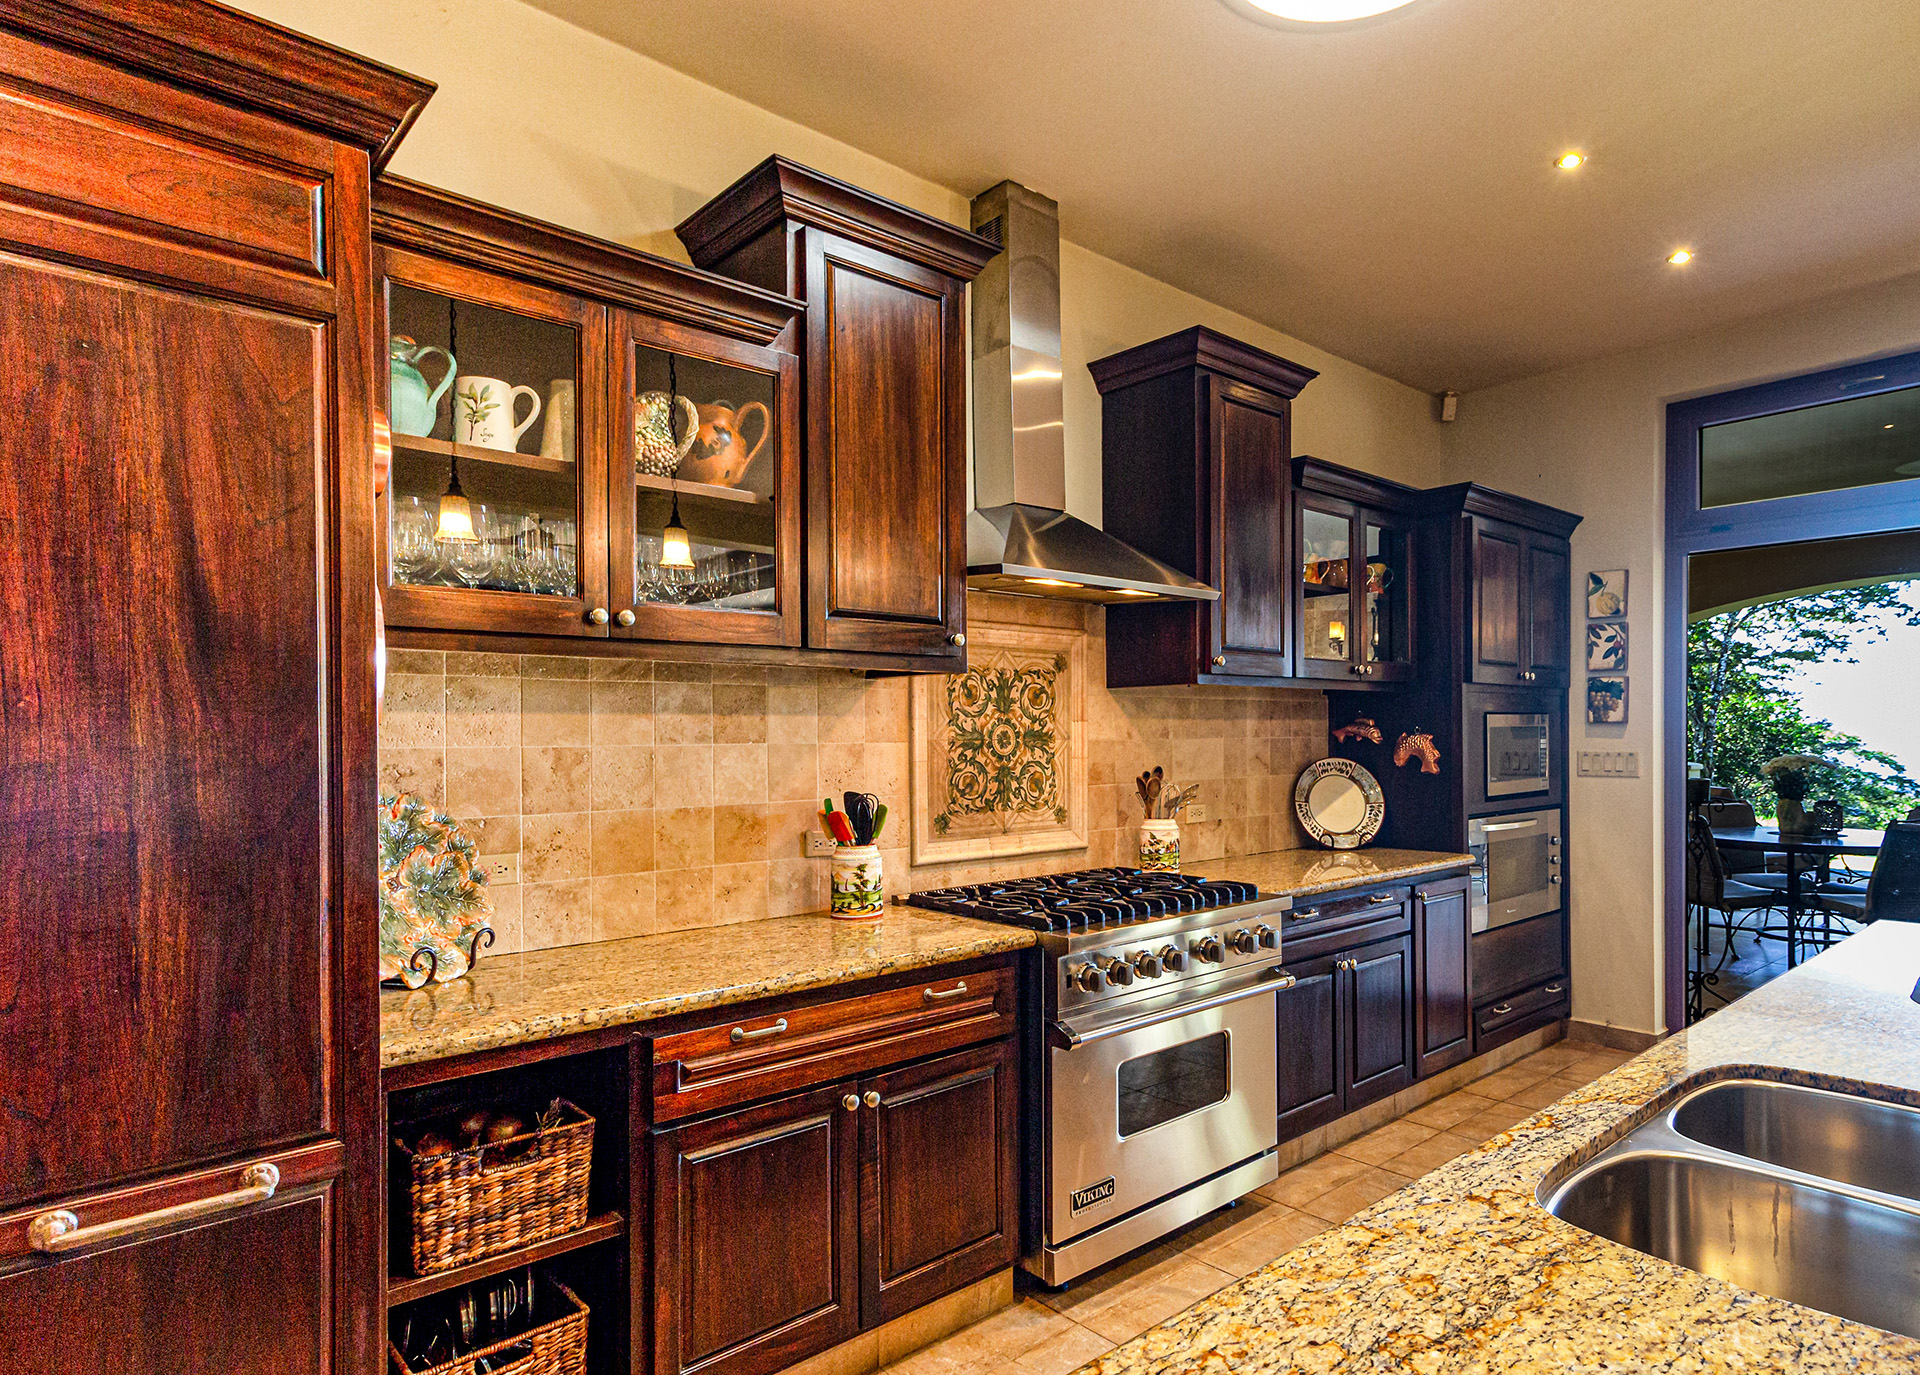 Creative Storage Ideas For Your Home Remodel In Sonoma County